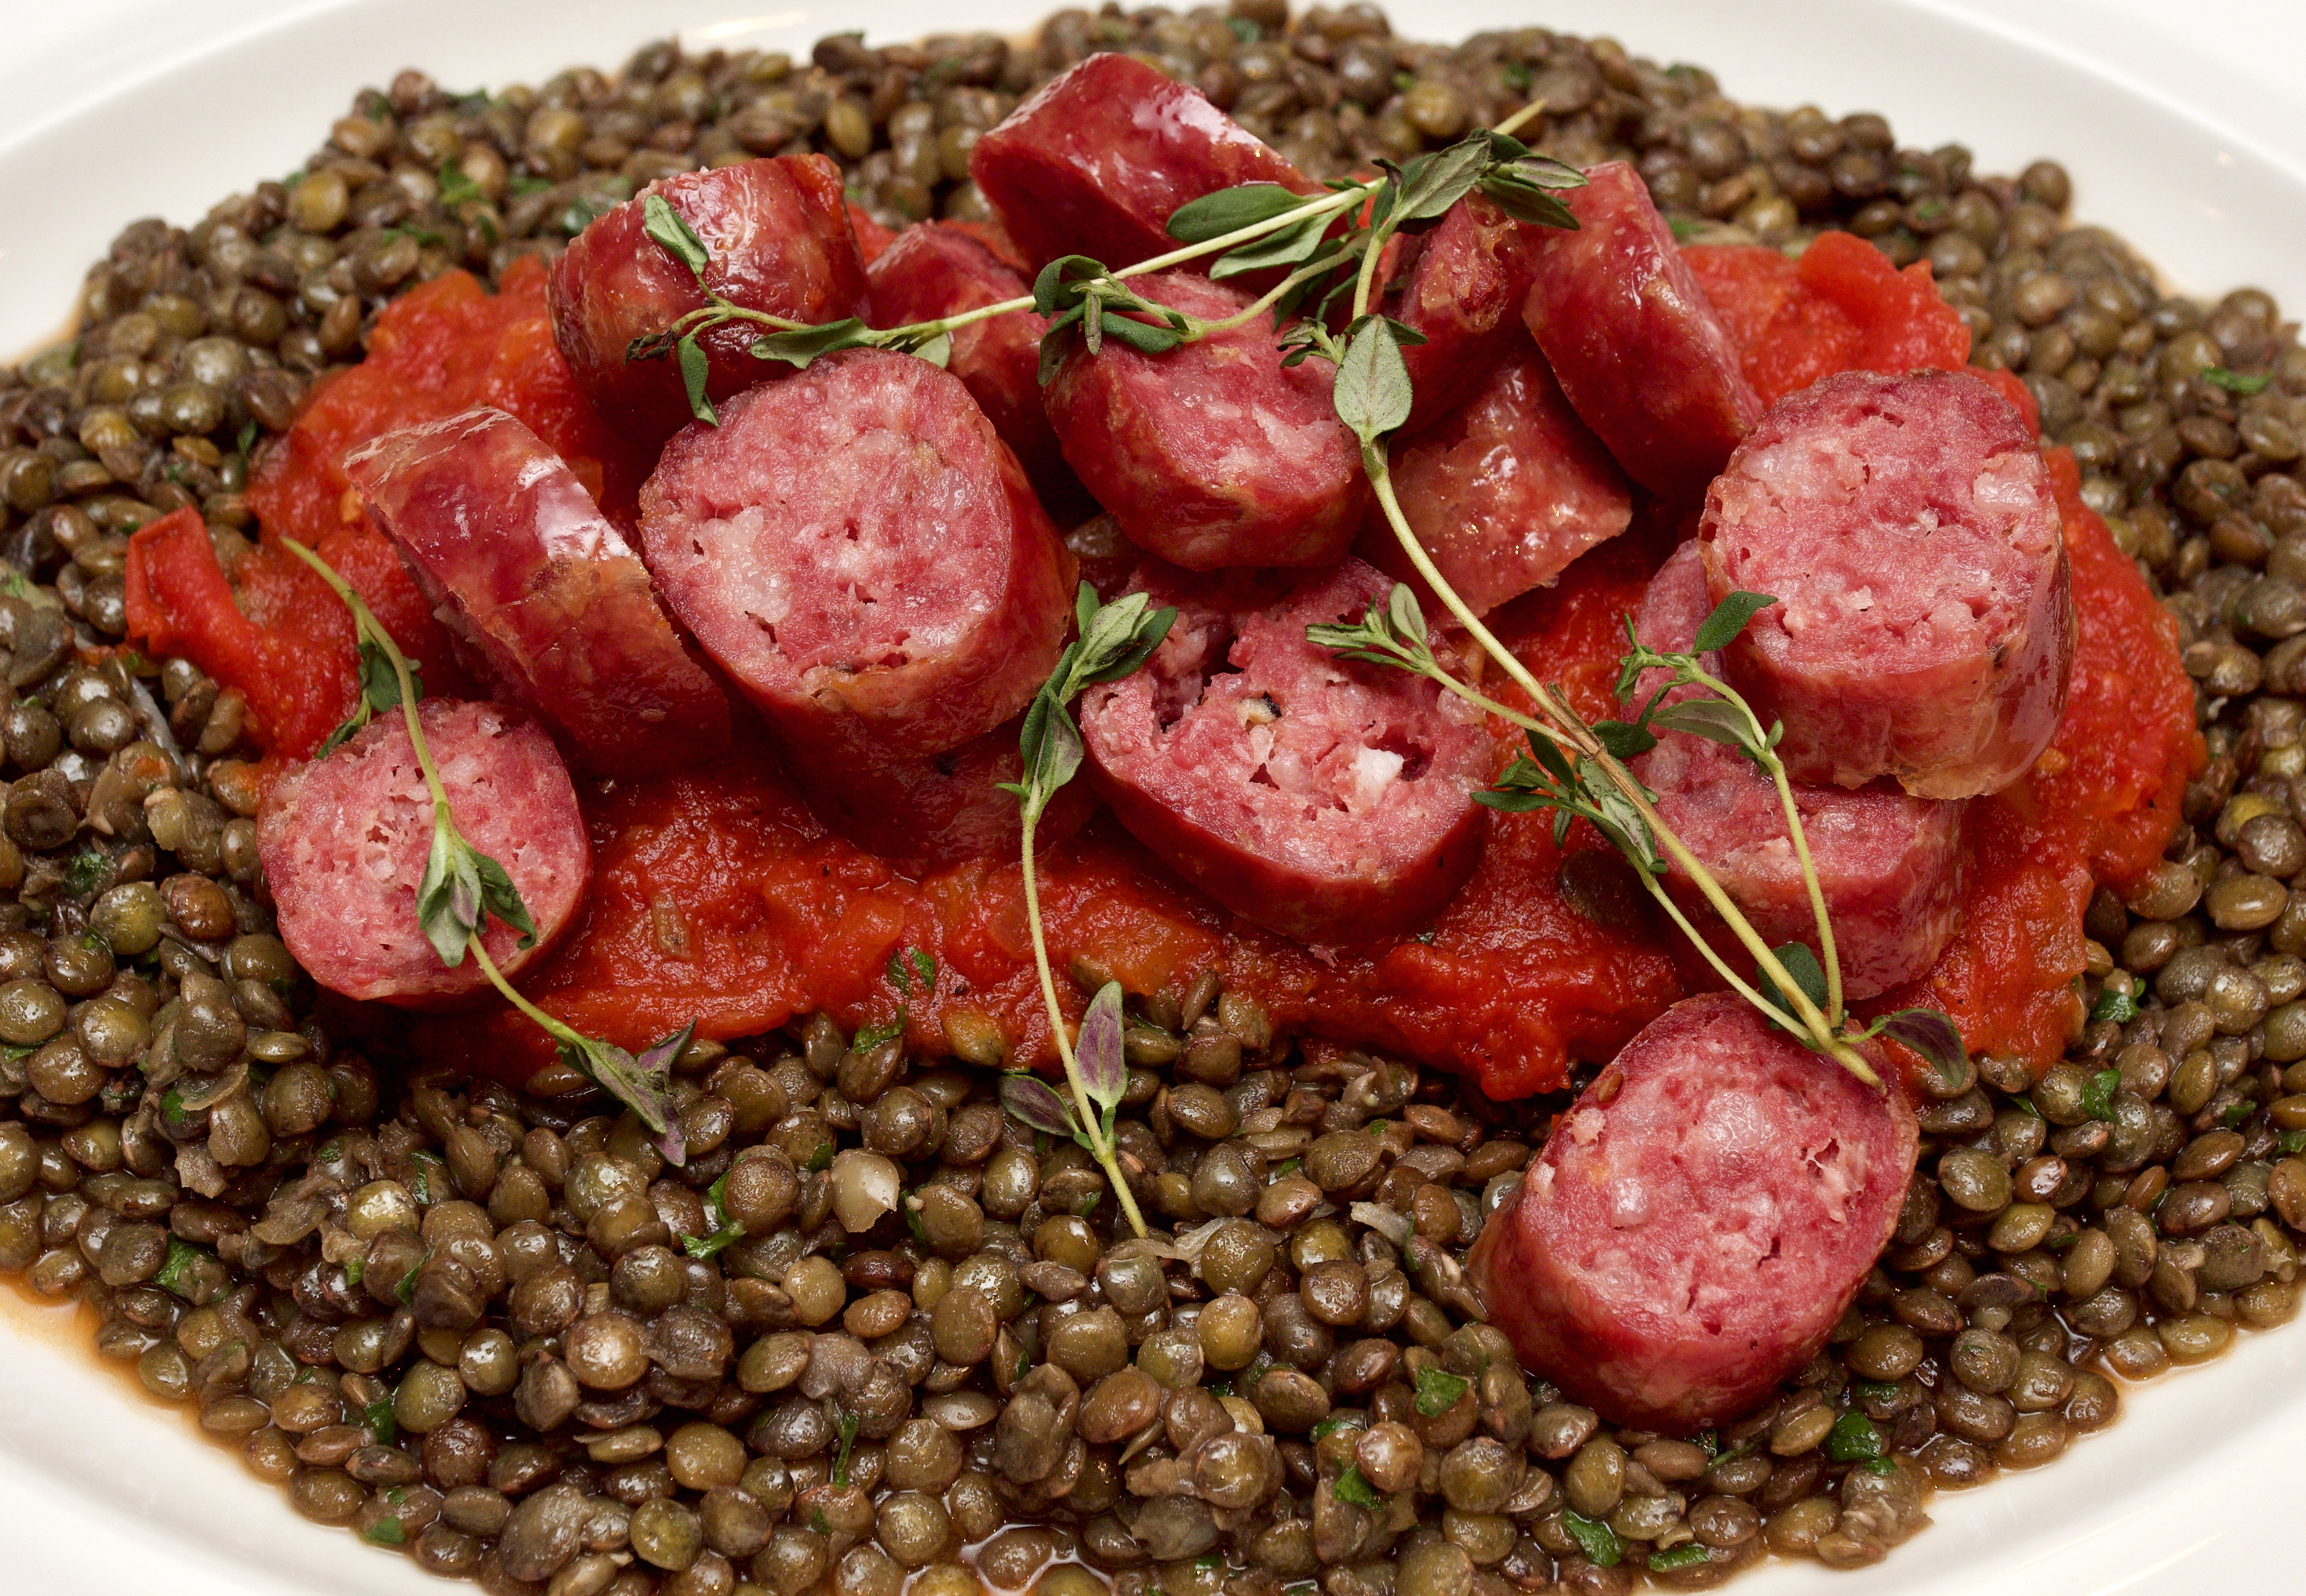 Sausages and green lentils with tomato salsa